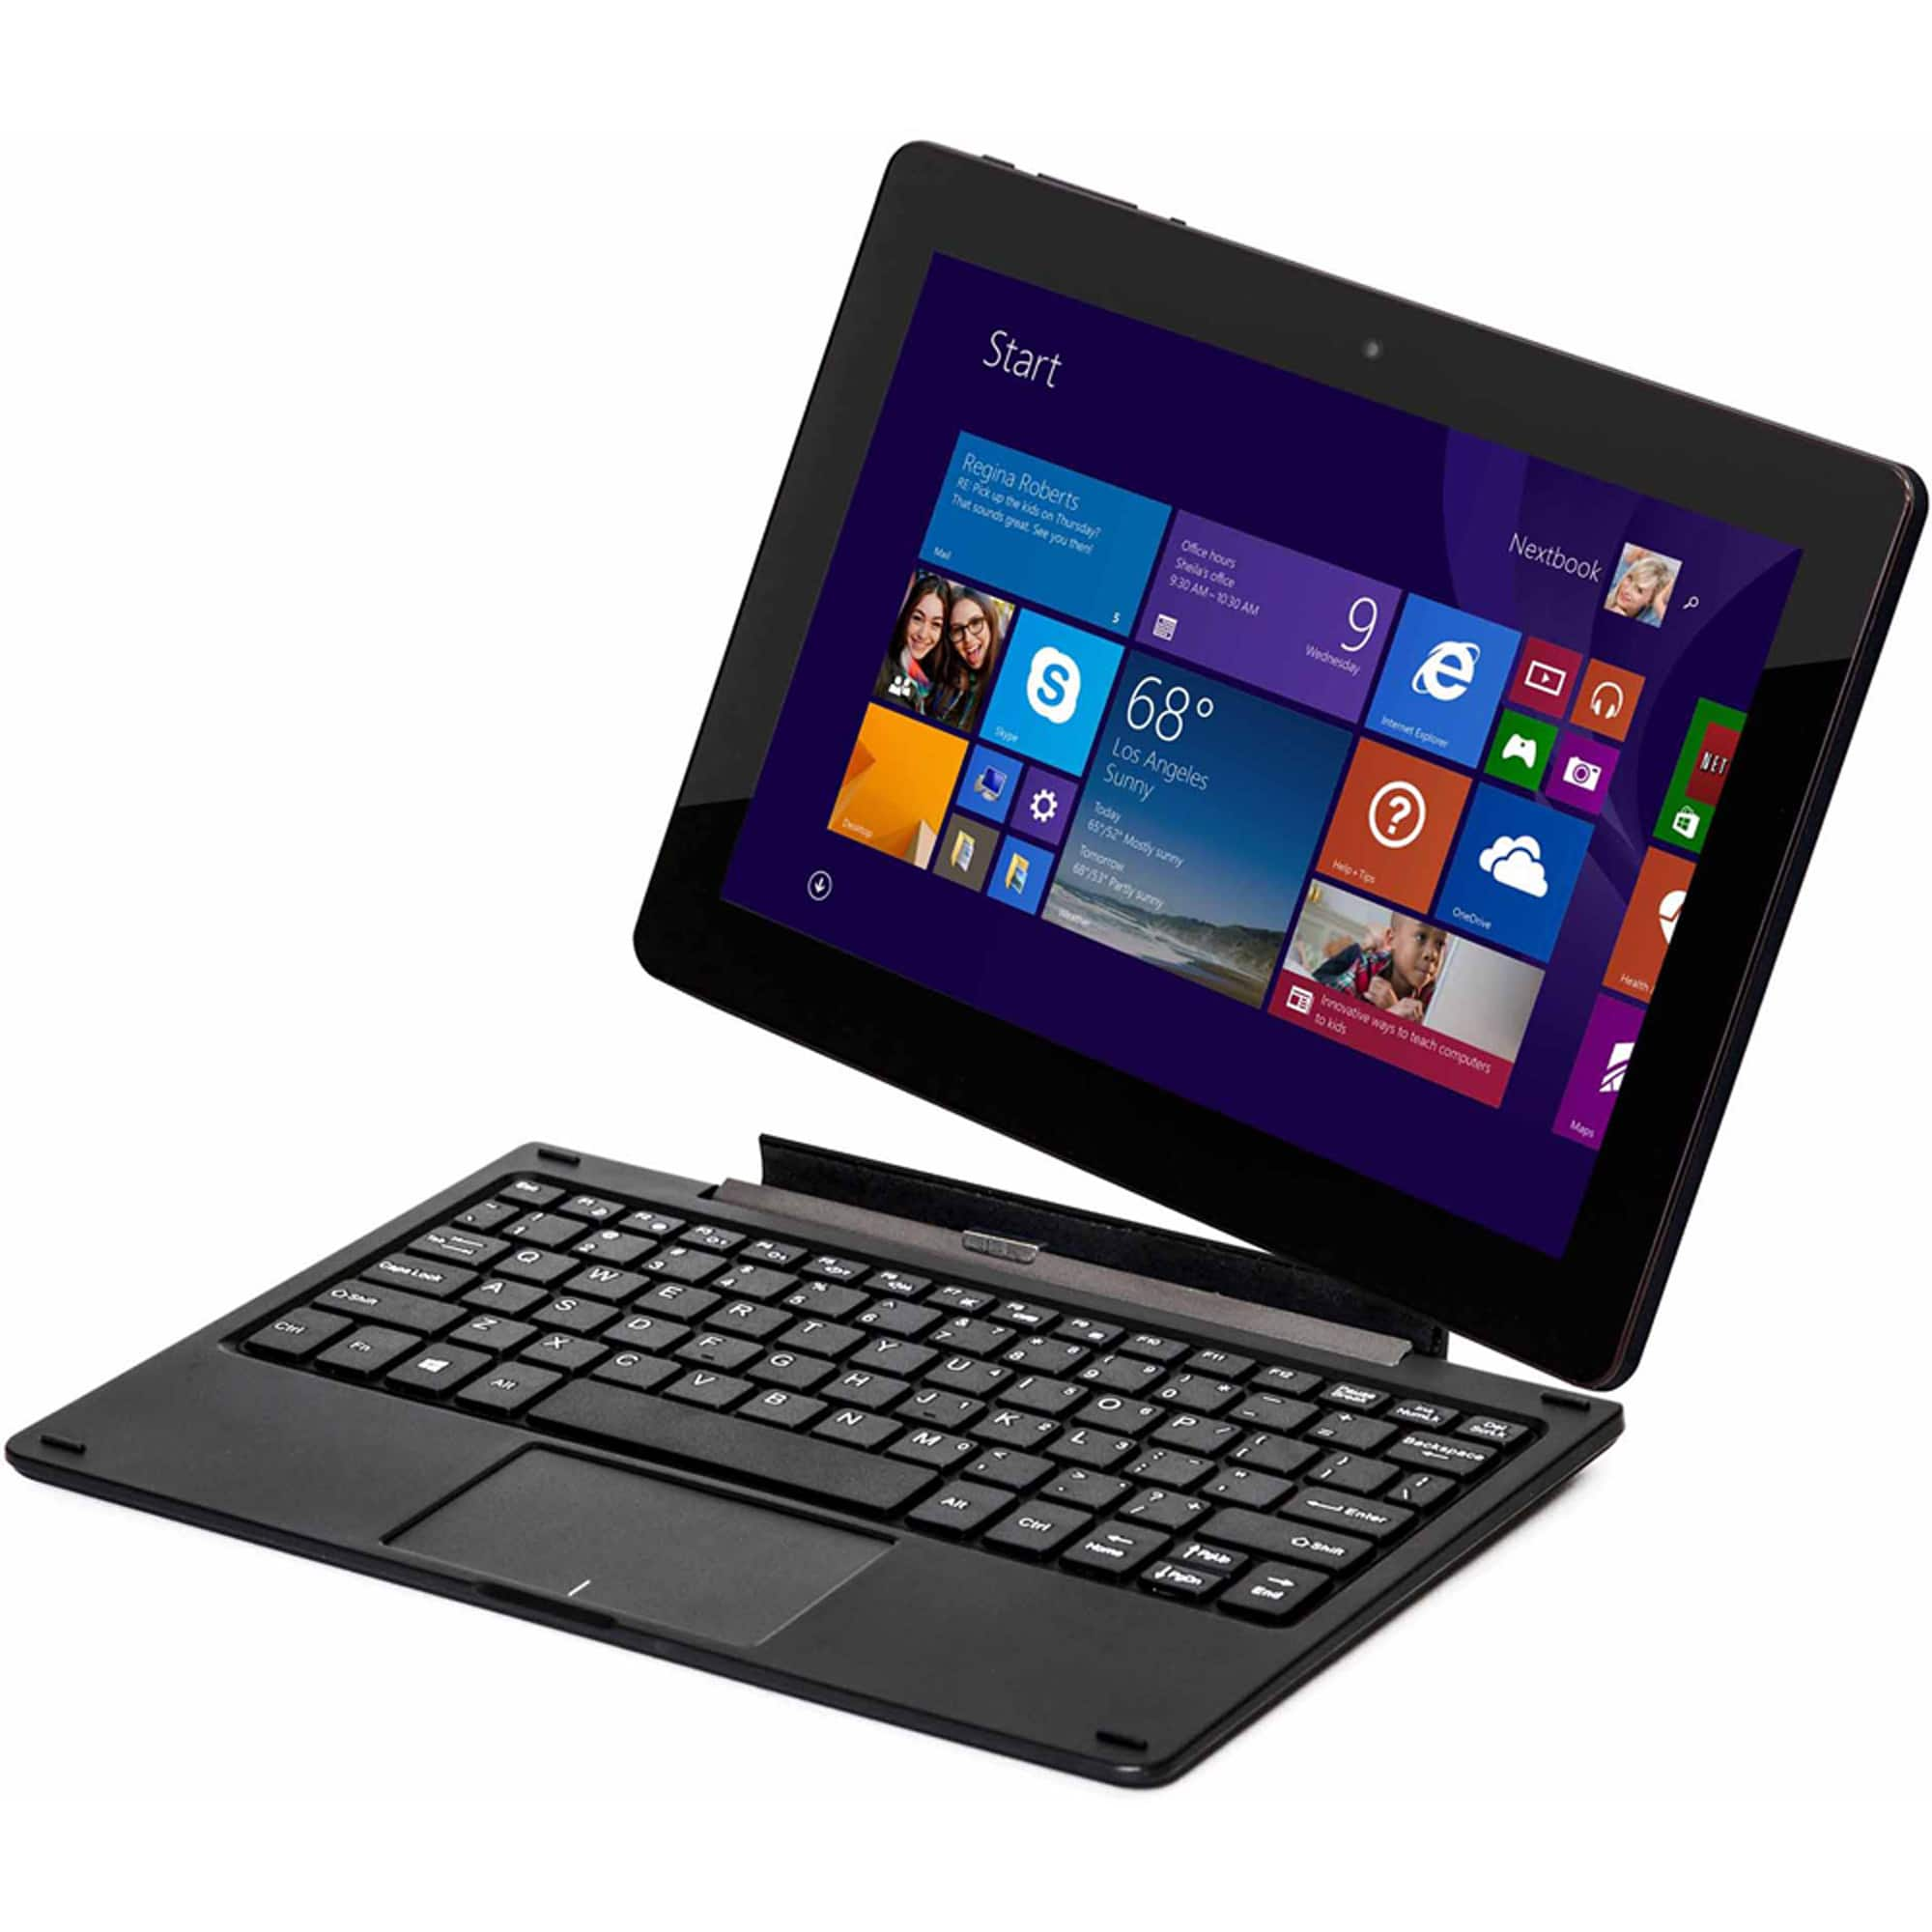 "Double Power DPW10A 2-in-1 Detachable Laptop 10"" 768P IPS Touch, Atom Z3735F, 2GB Ram, 32GB eMMC, Win10 Home, Keyboard Dock @ $90 with F/S"